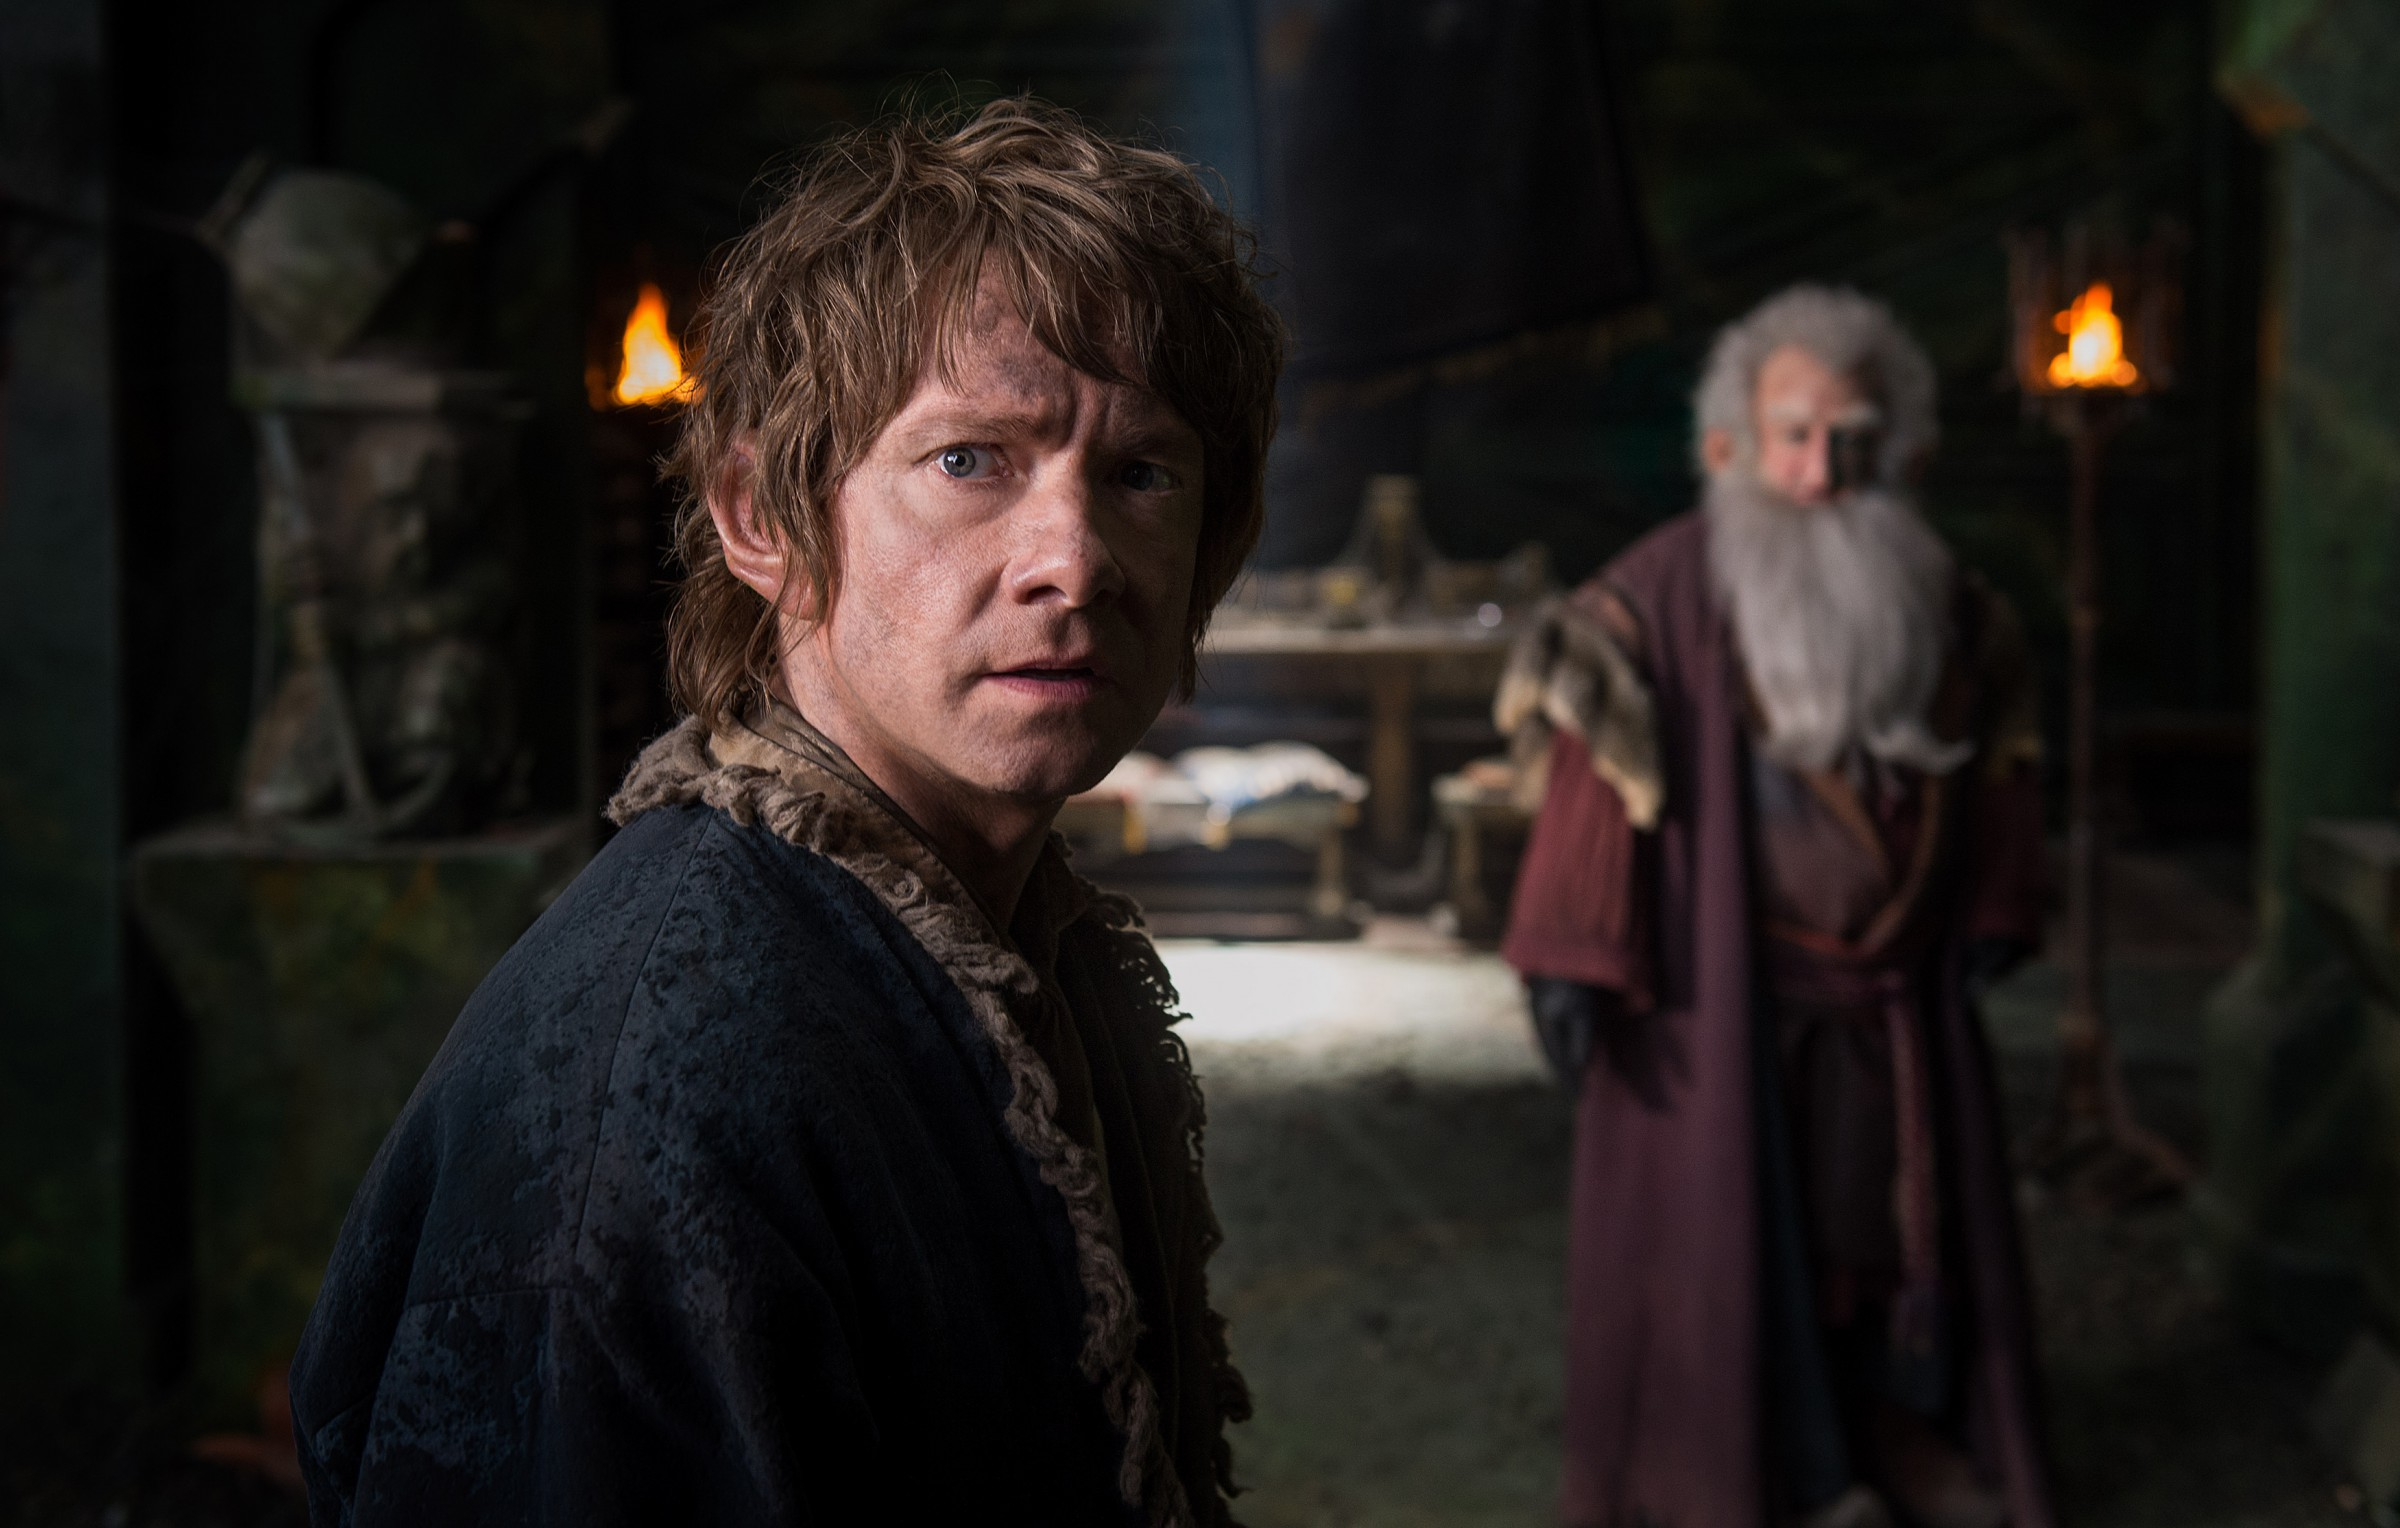 The Hobbit The Battle of the Five Armies-PHOTOS-04DEZEMBRO2014-03